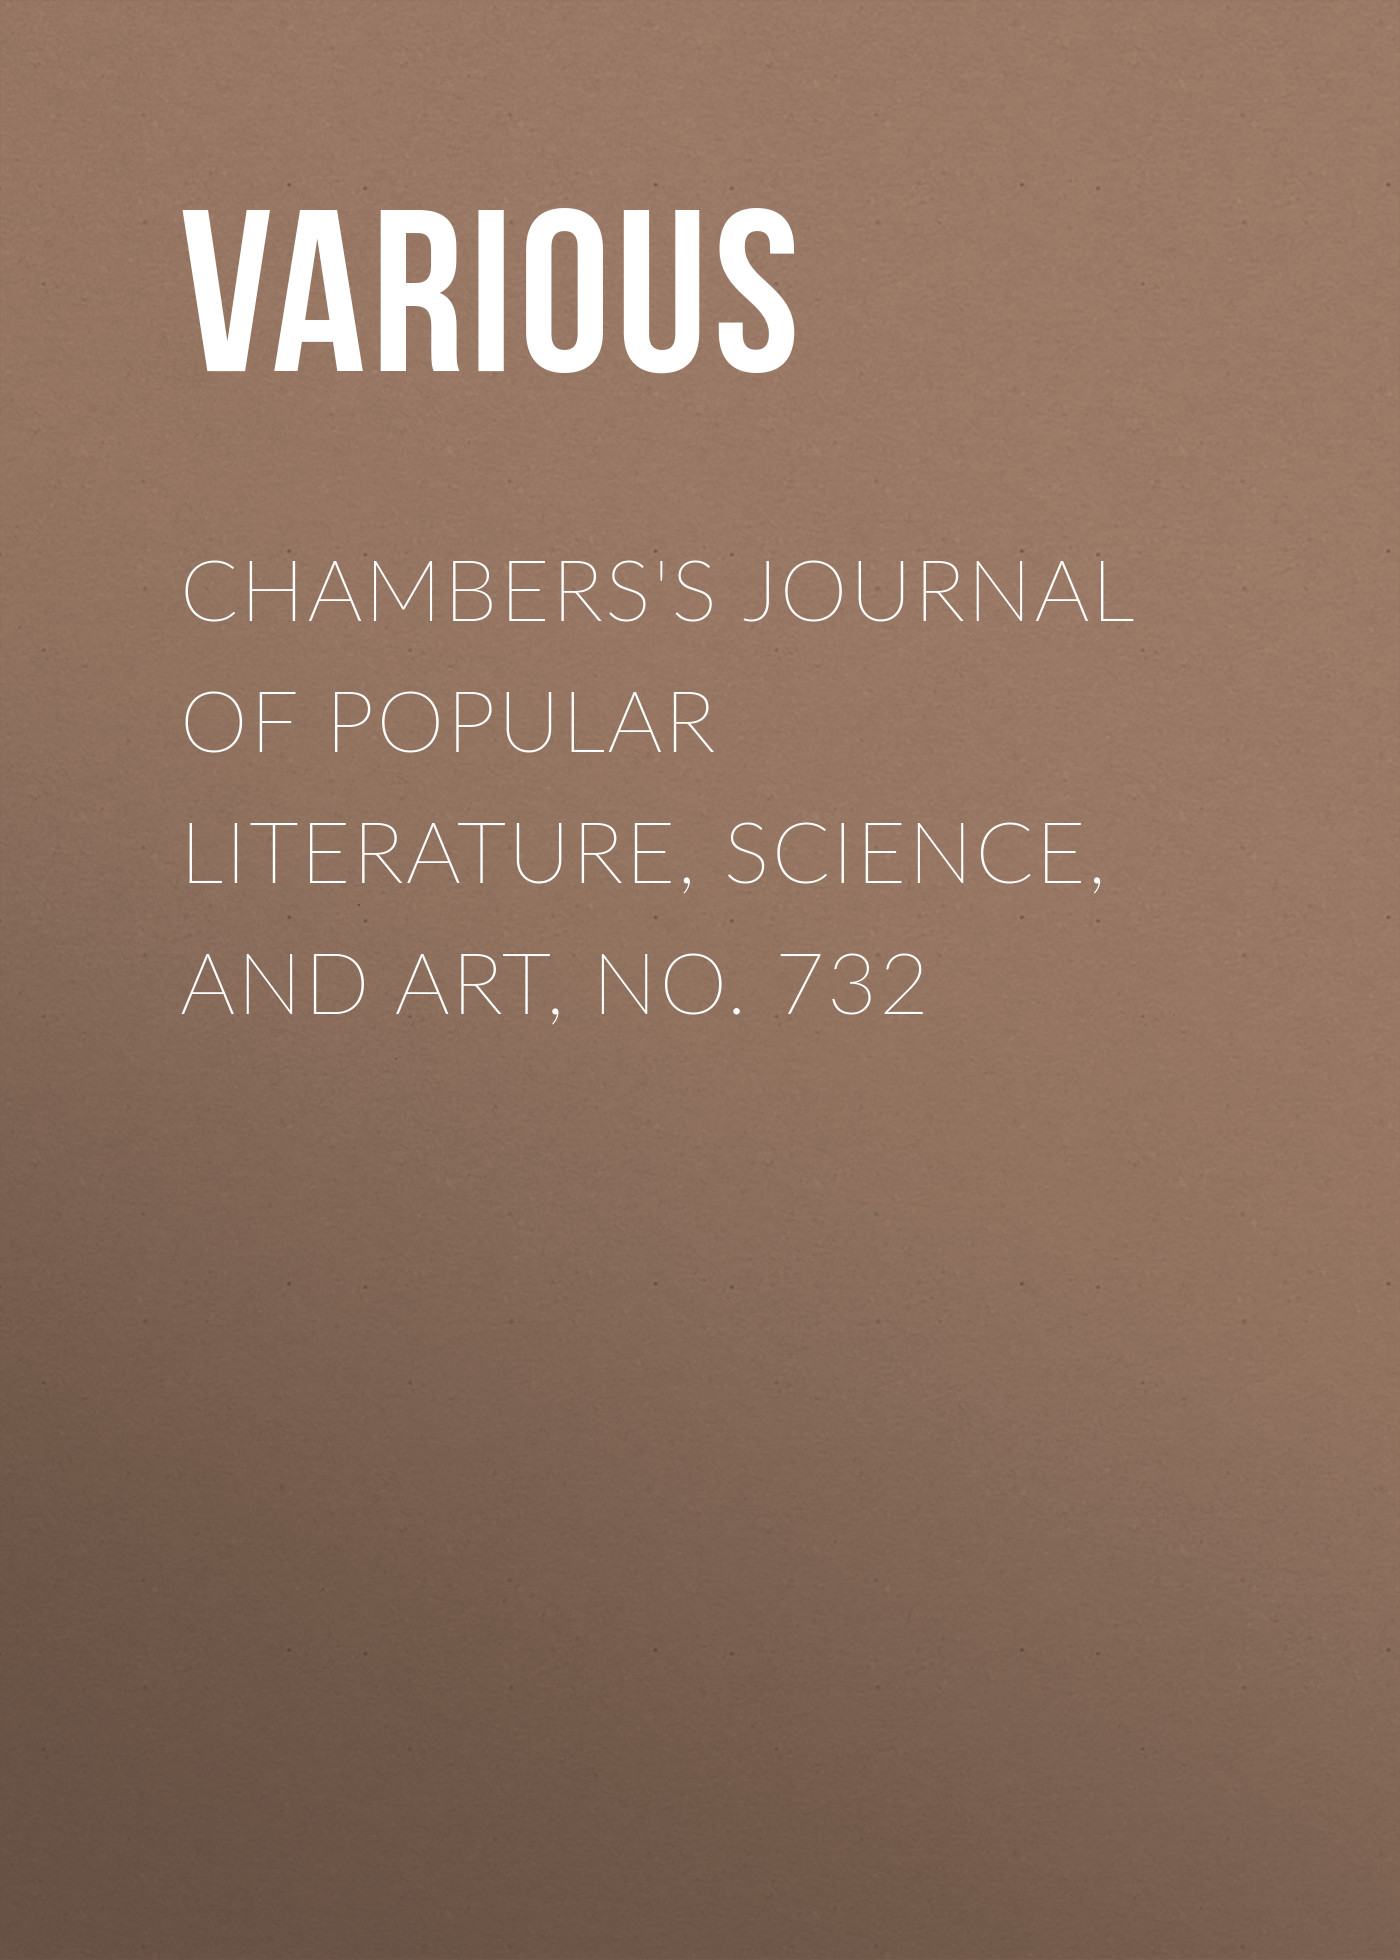 Various Chambers's Journal of Popular Literature, Science, and Art, No. 732 various chambers s journal of popular literature science and art no 732